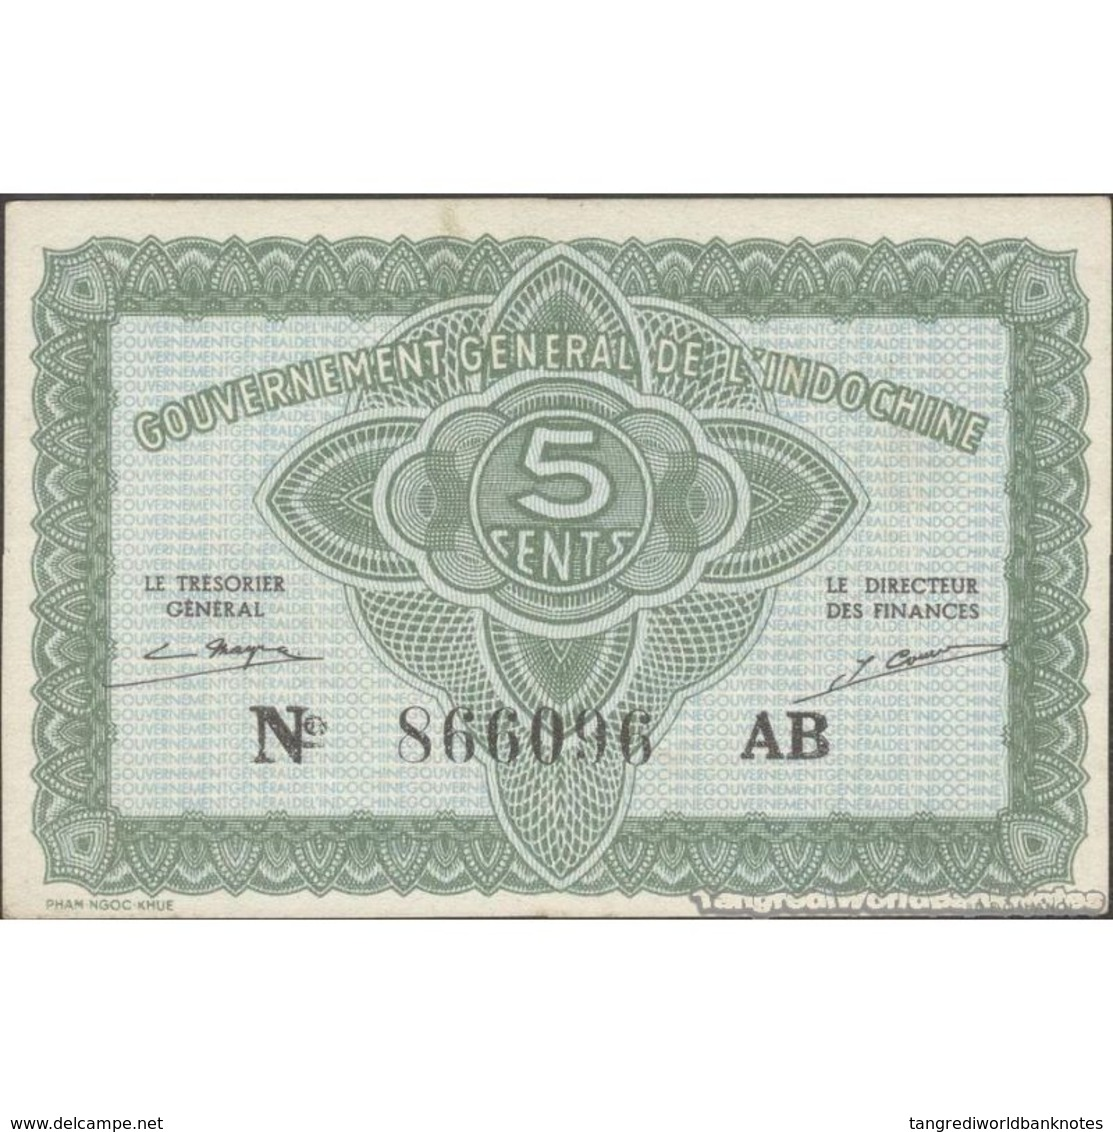 TWN - FRENCH INDO-CHINA 88a - 5 Cents 1942 Serial # Format 123456XX - Suffix AB AXF - Indochina